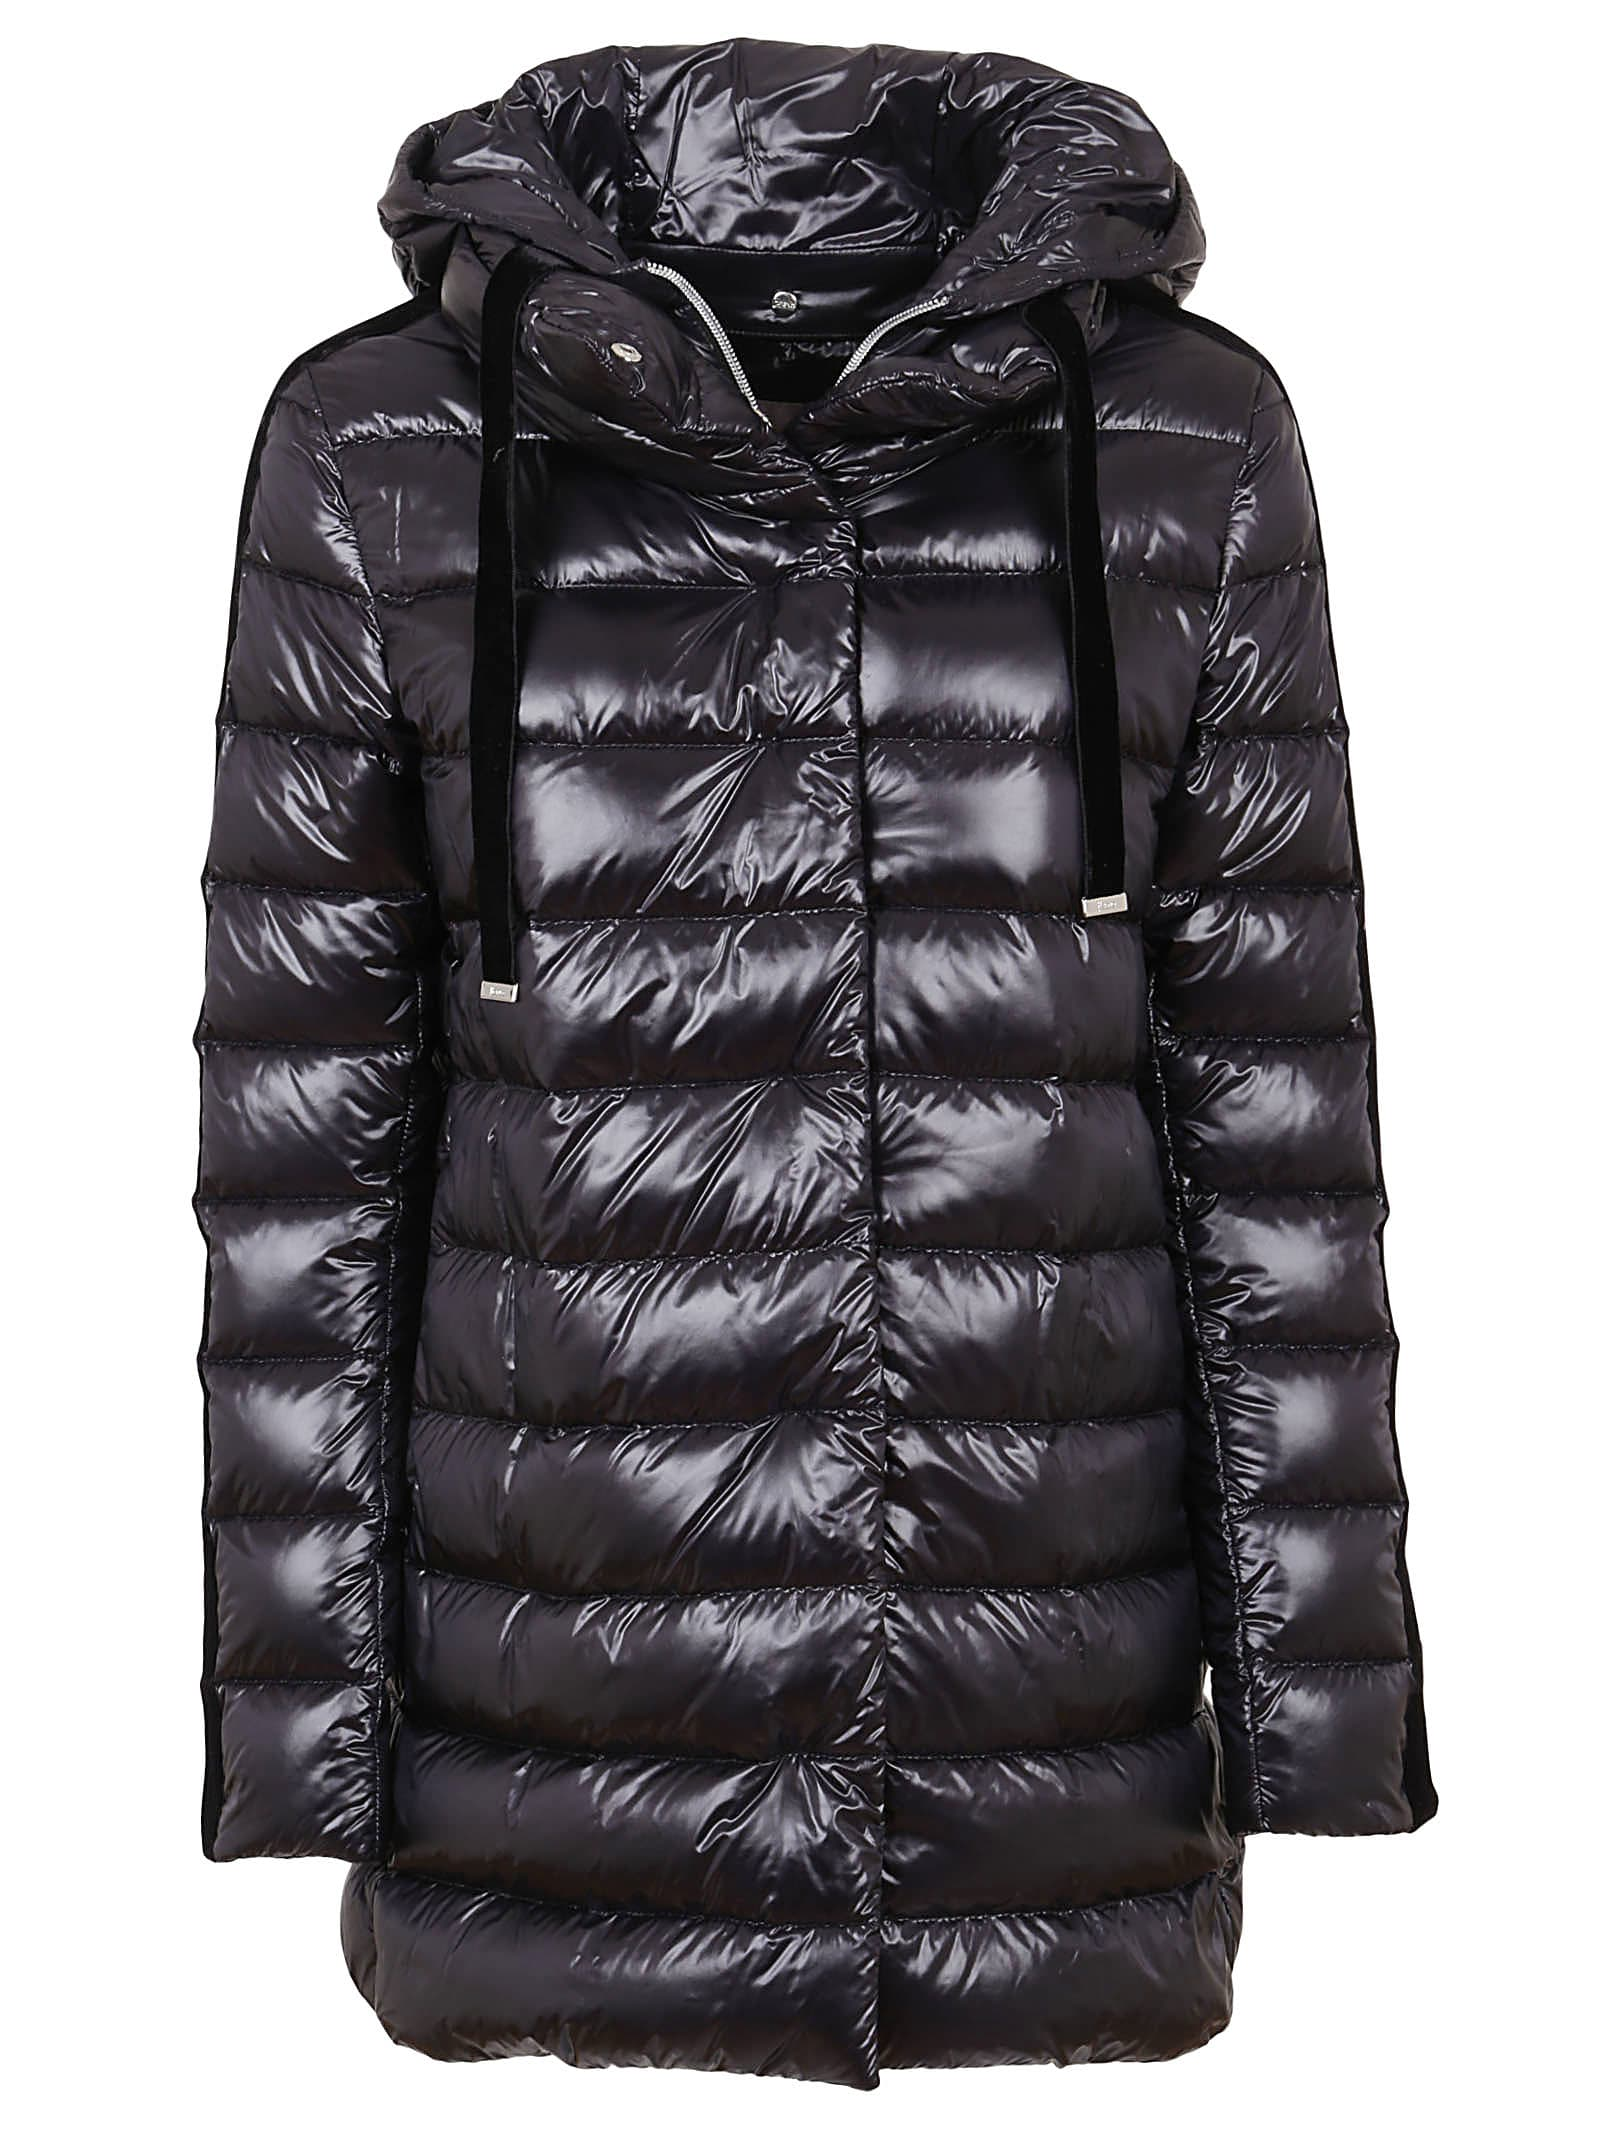 Black Technical Fabric Padded Jacket